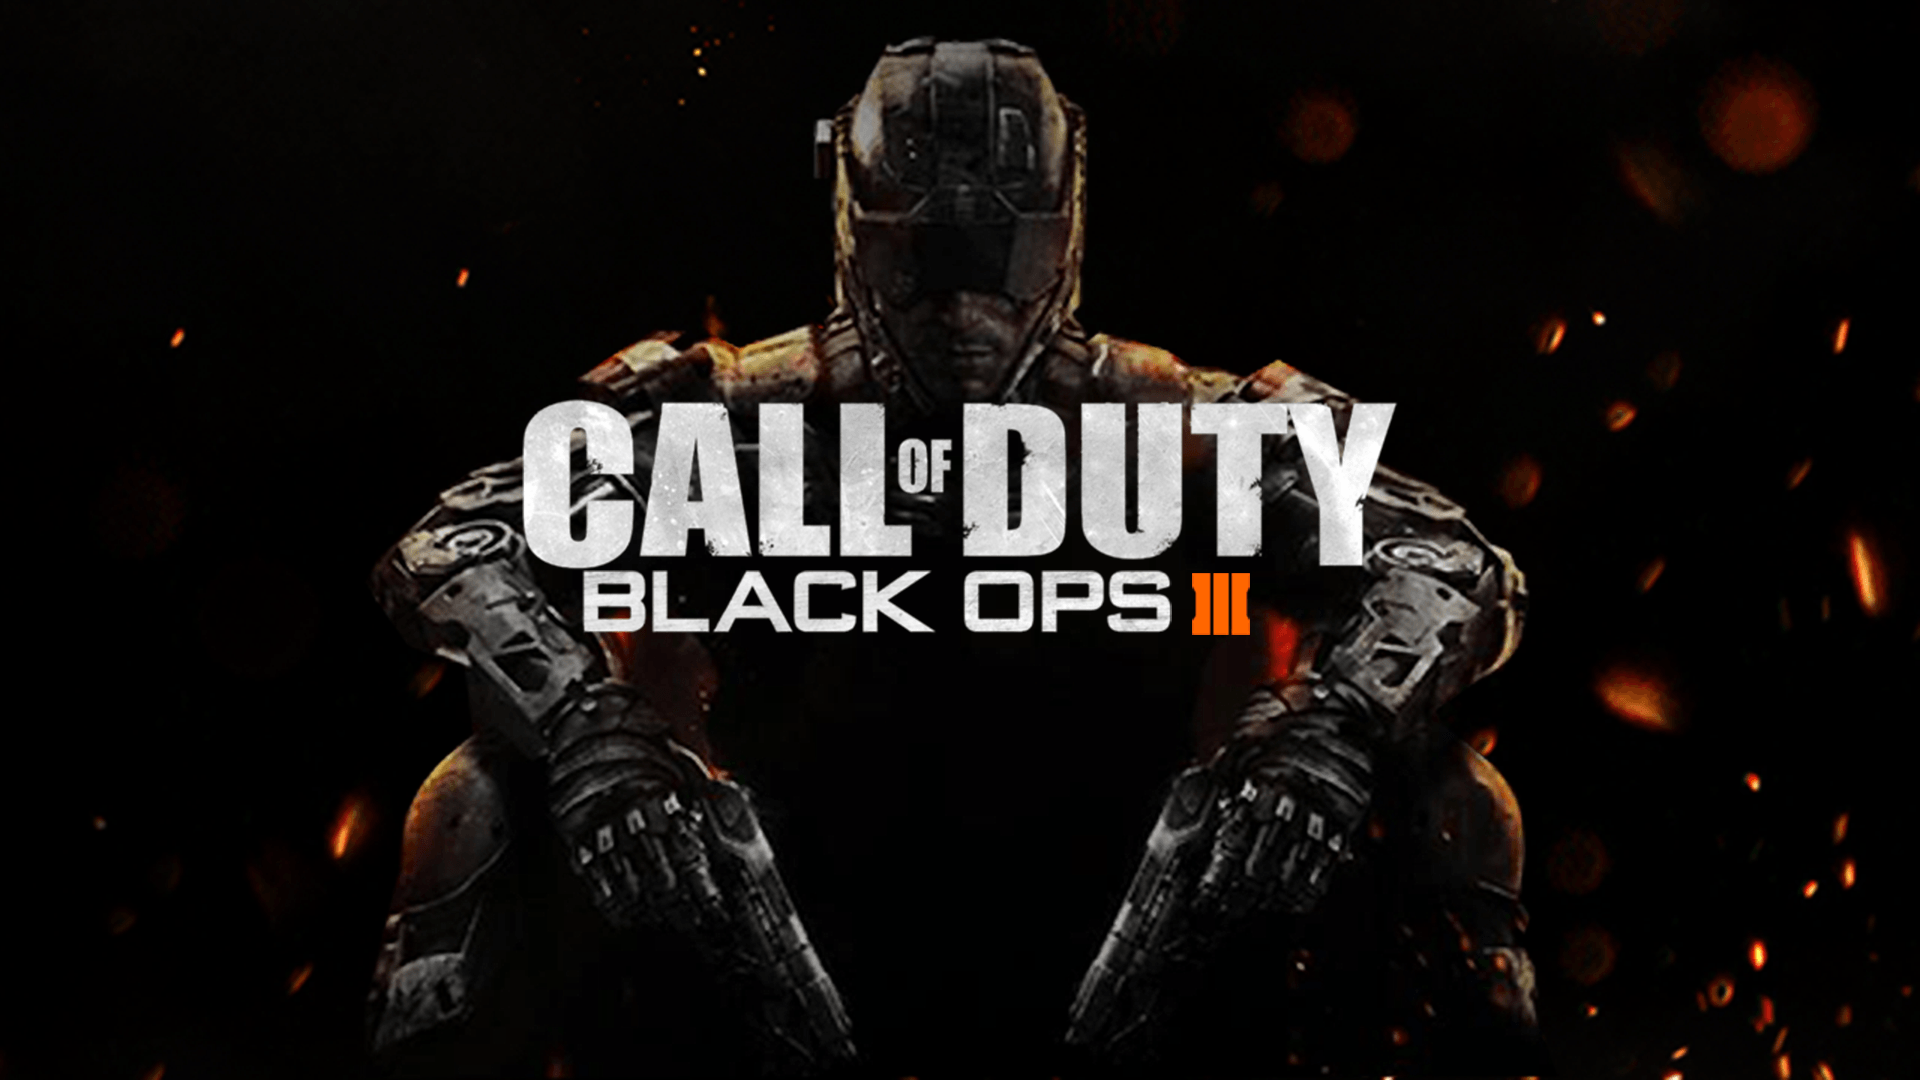 COD Black Ops III Wallpapers